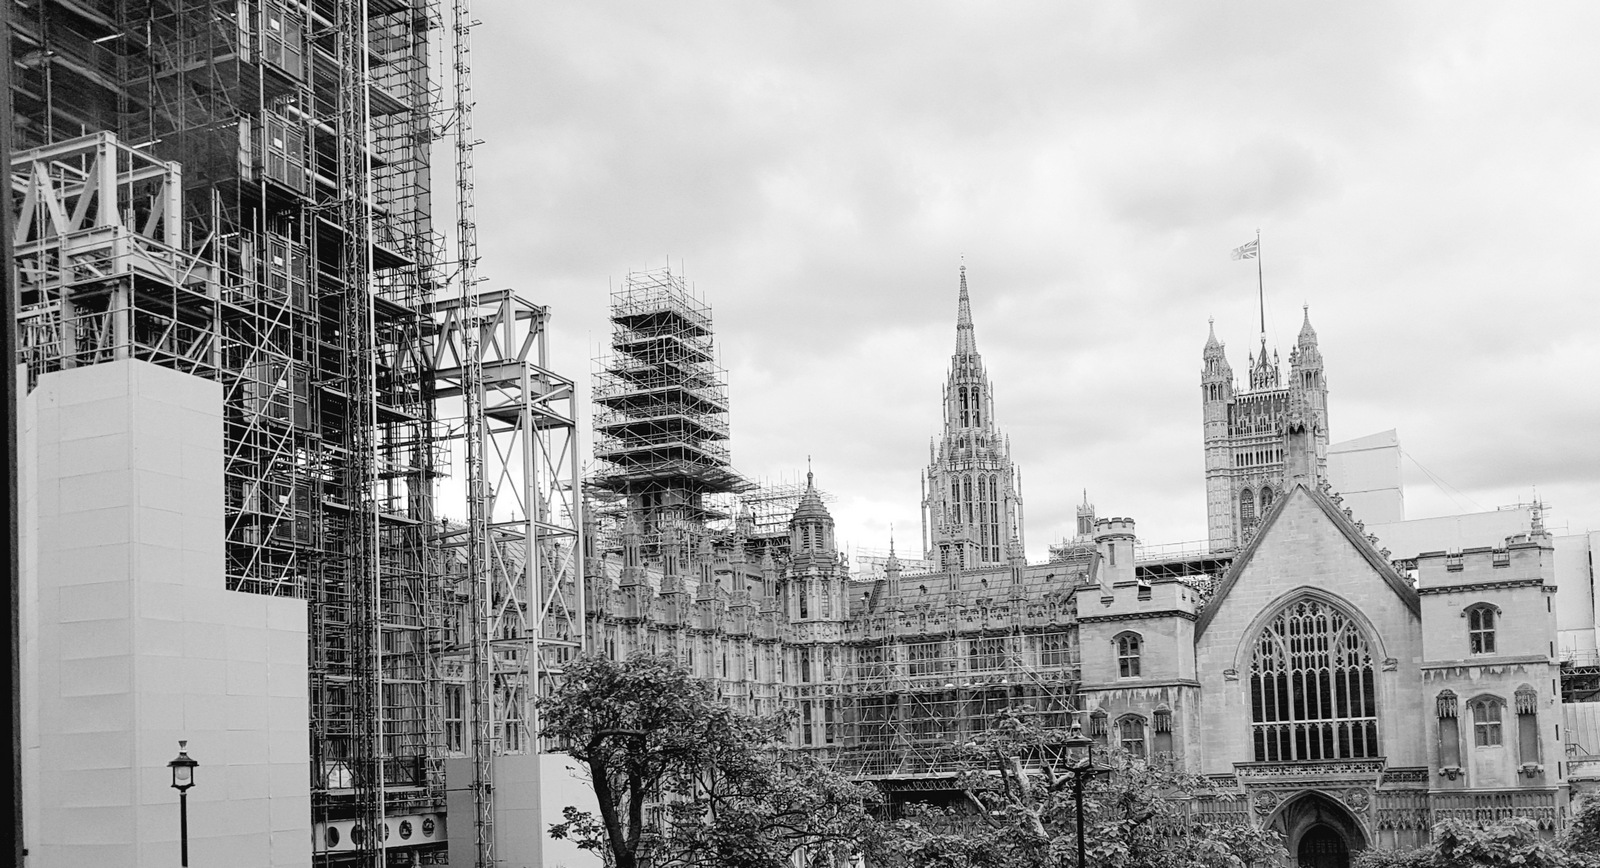 Photo by me - the Palace of Westminster from Portcullis House, June 2018